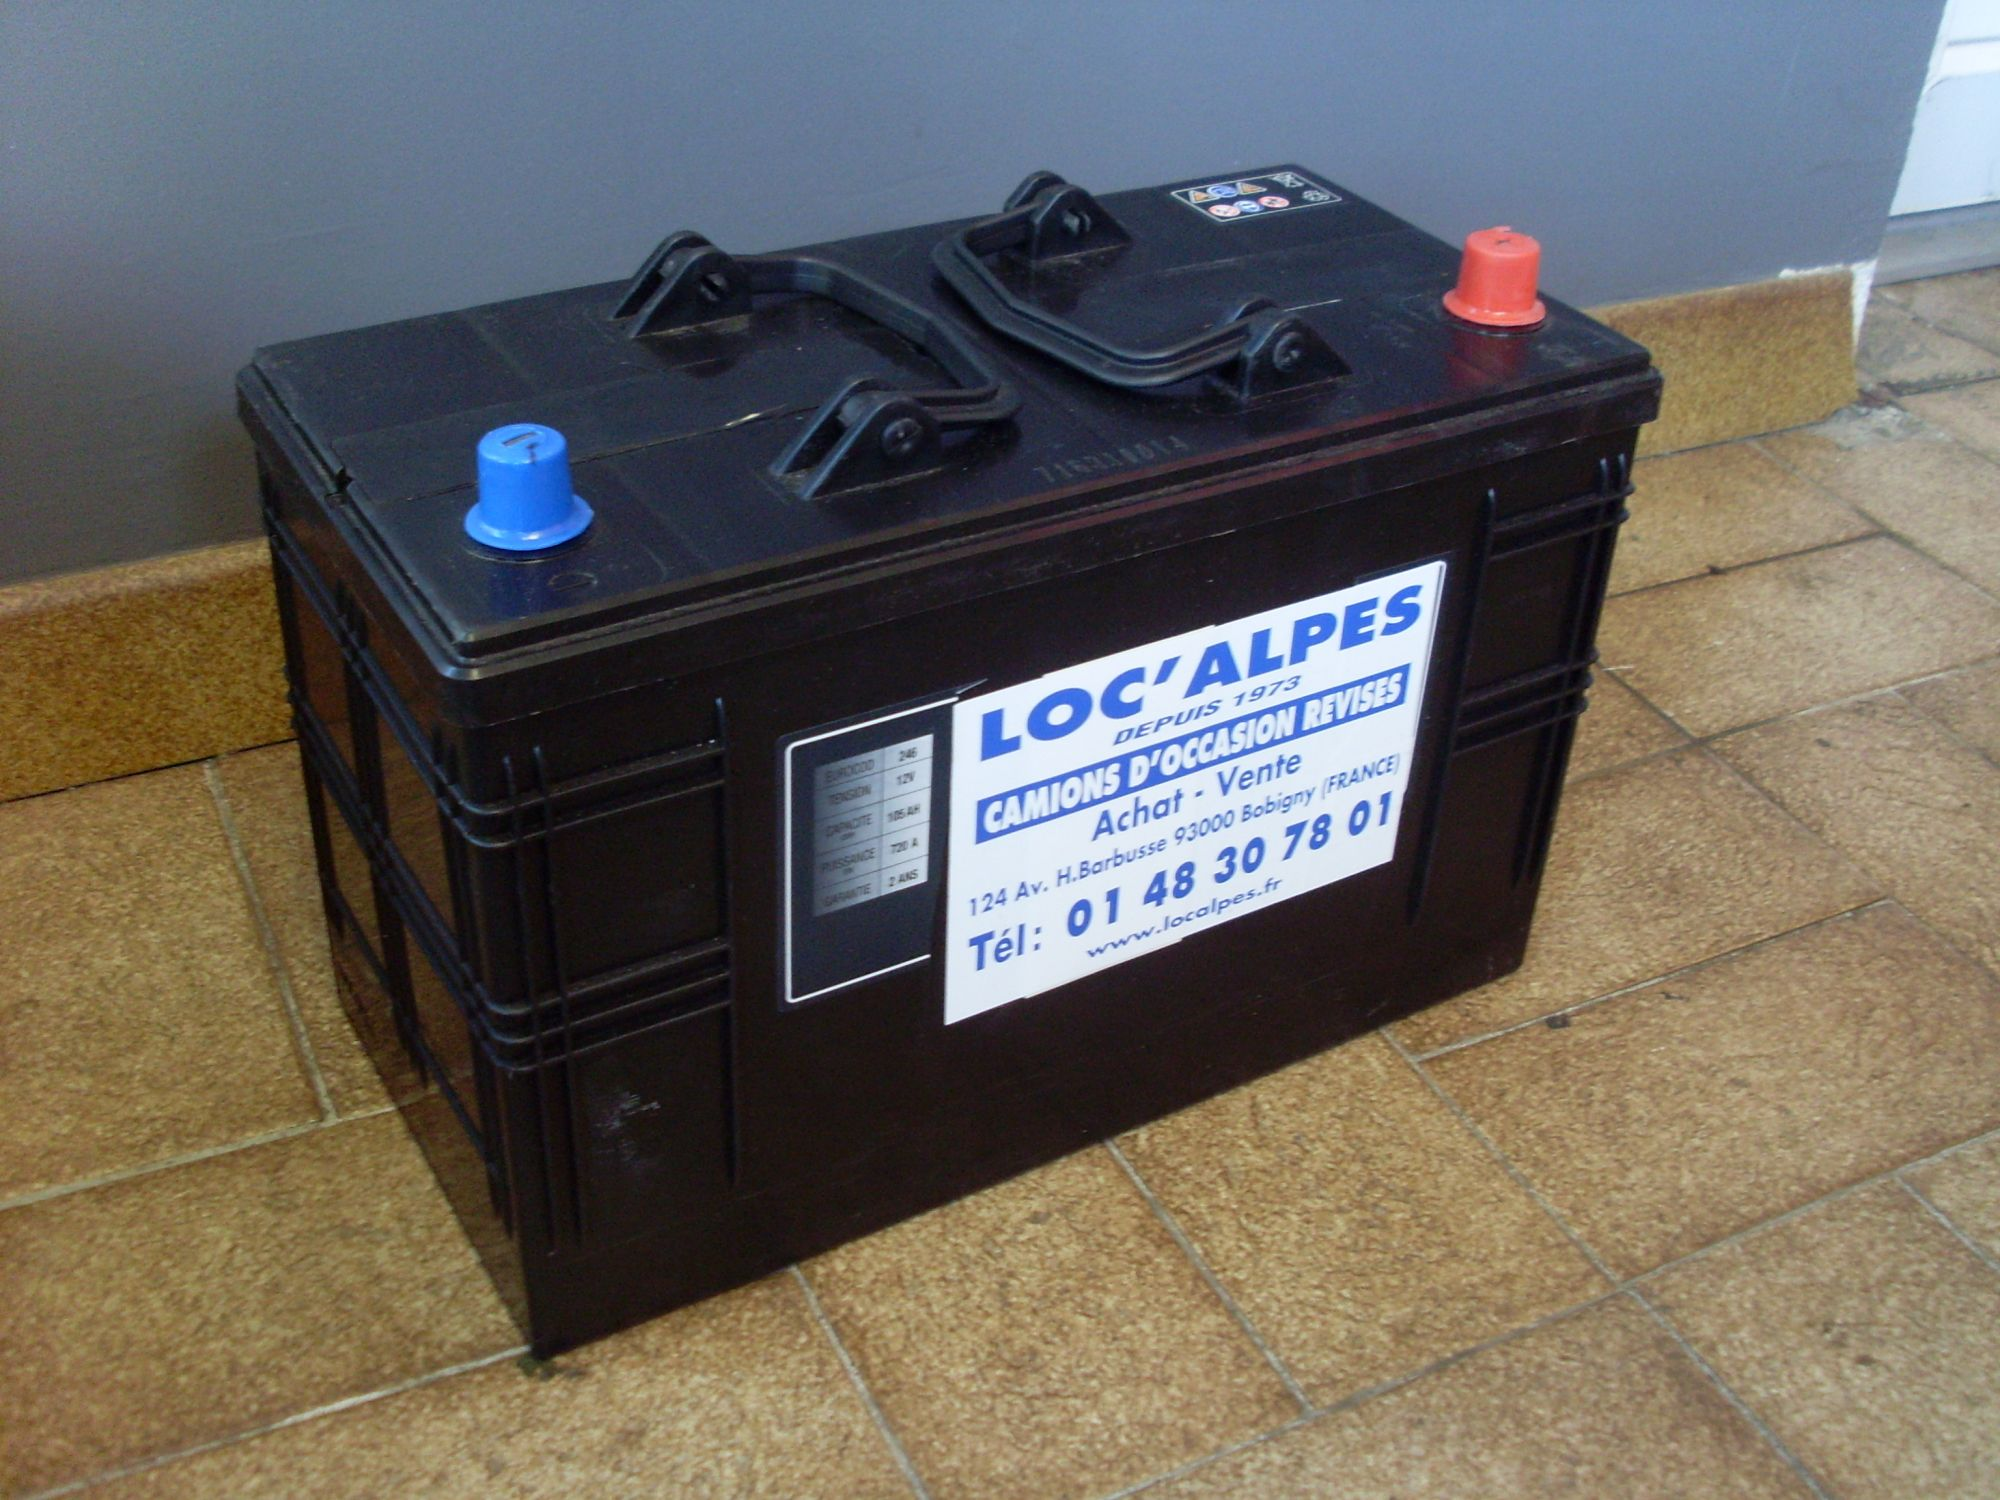 Batteries 12 v en promo, 105ah